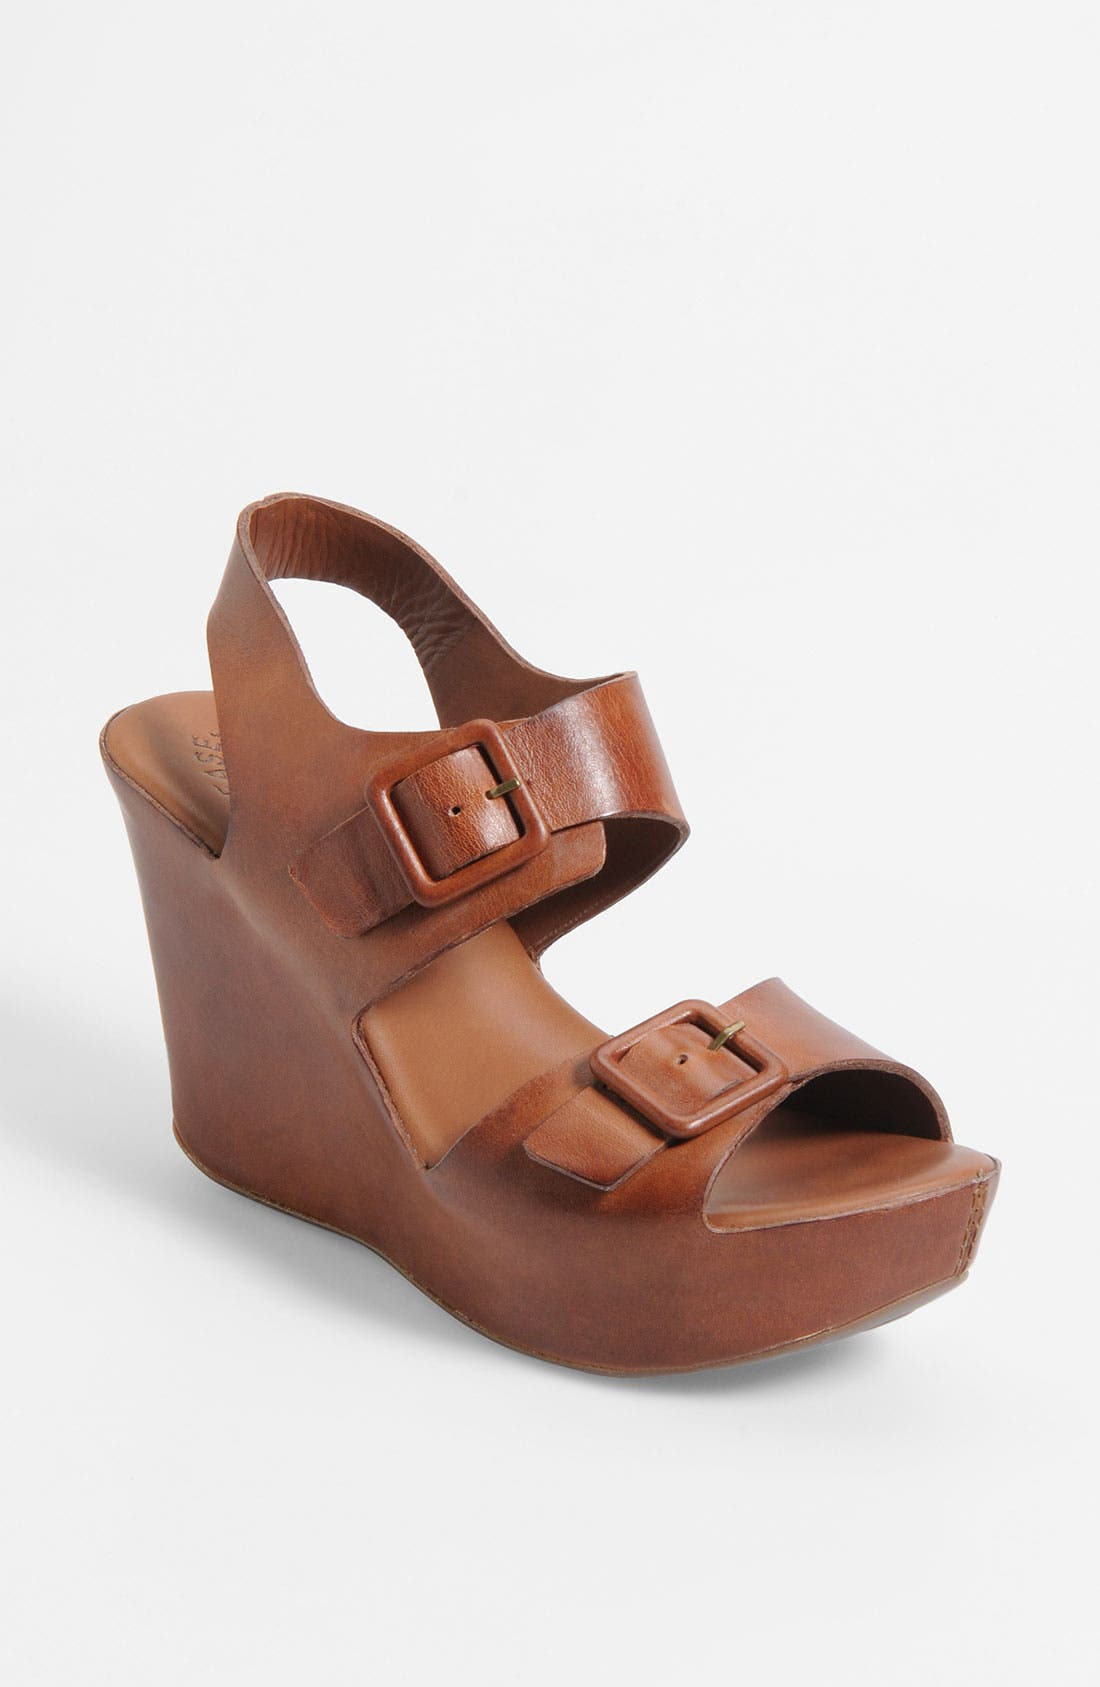 Alternate Image 1 Selected - Kork-Ease 'Susie' Wedge Sandal